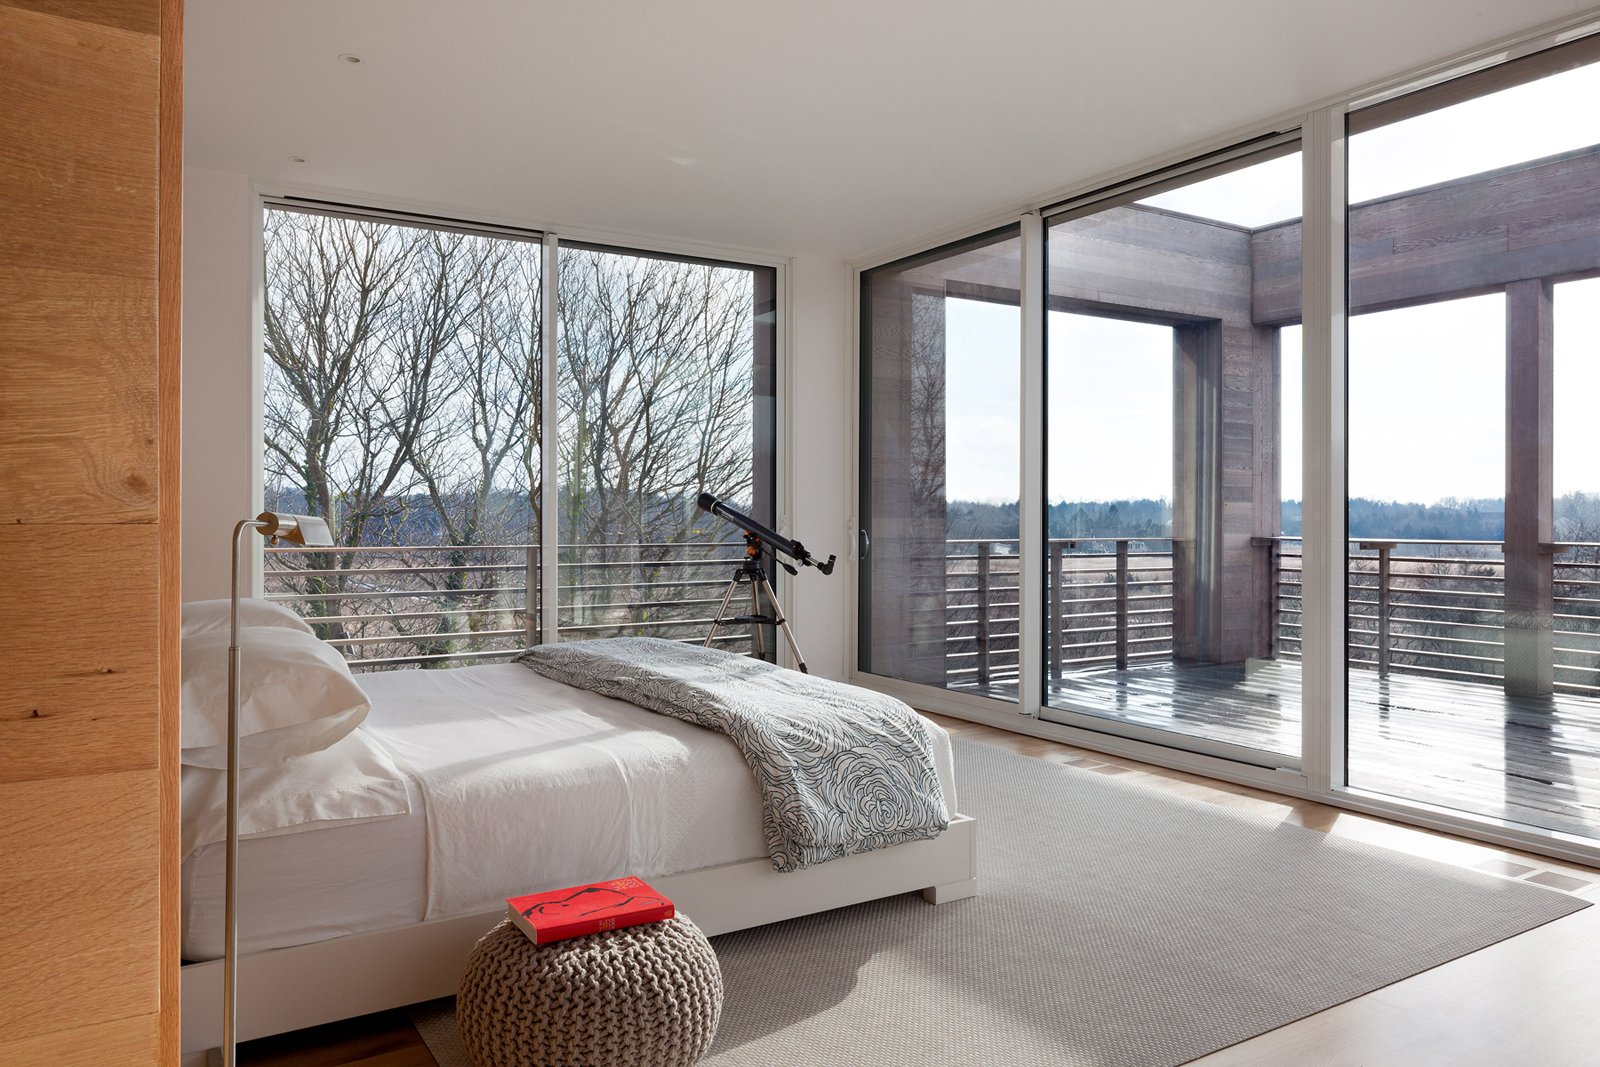 Ciavarra used floor-to-ceiling glass for the master bedroom, which leads onto a deck.  Shining Examples of Clerestory Windows by Luke Hopping from Watch Hill